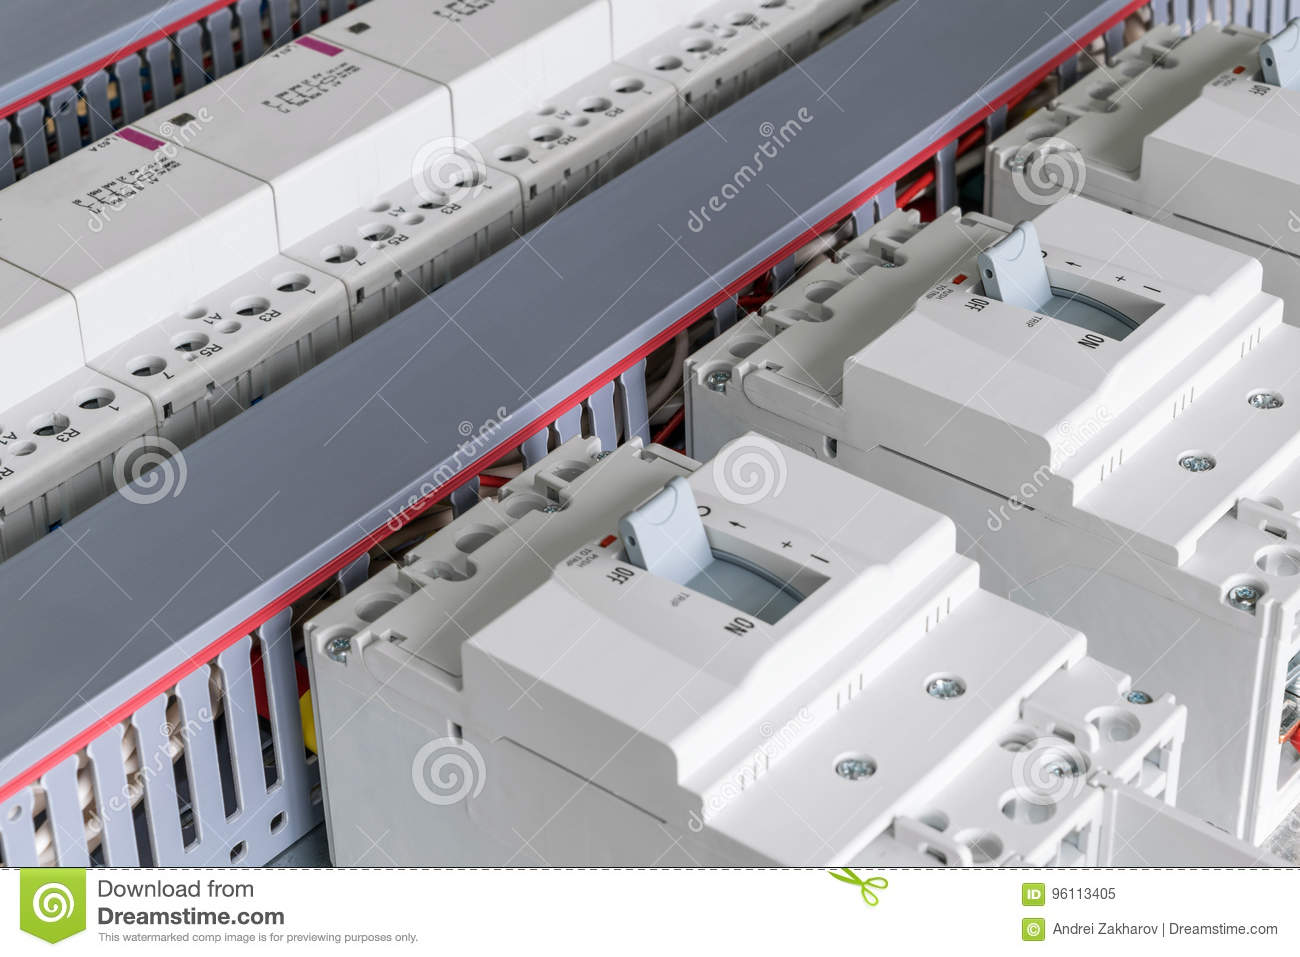 In The Electrical Cabinet Are Mounted Circuit Breakers Modular Circuits Switches Contactors